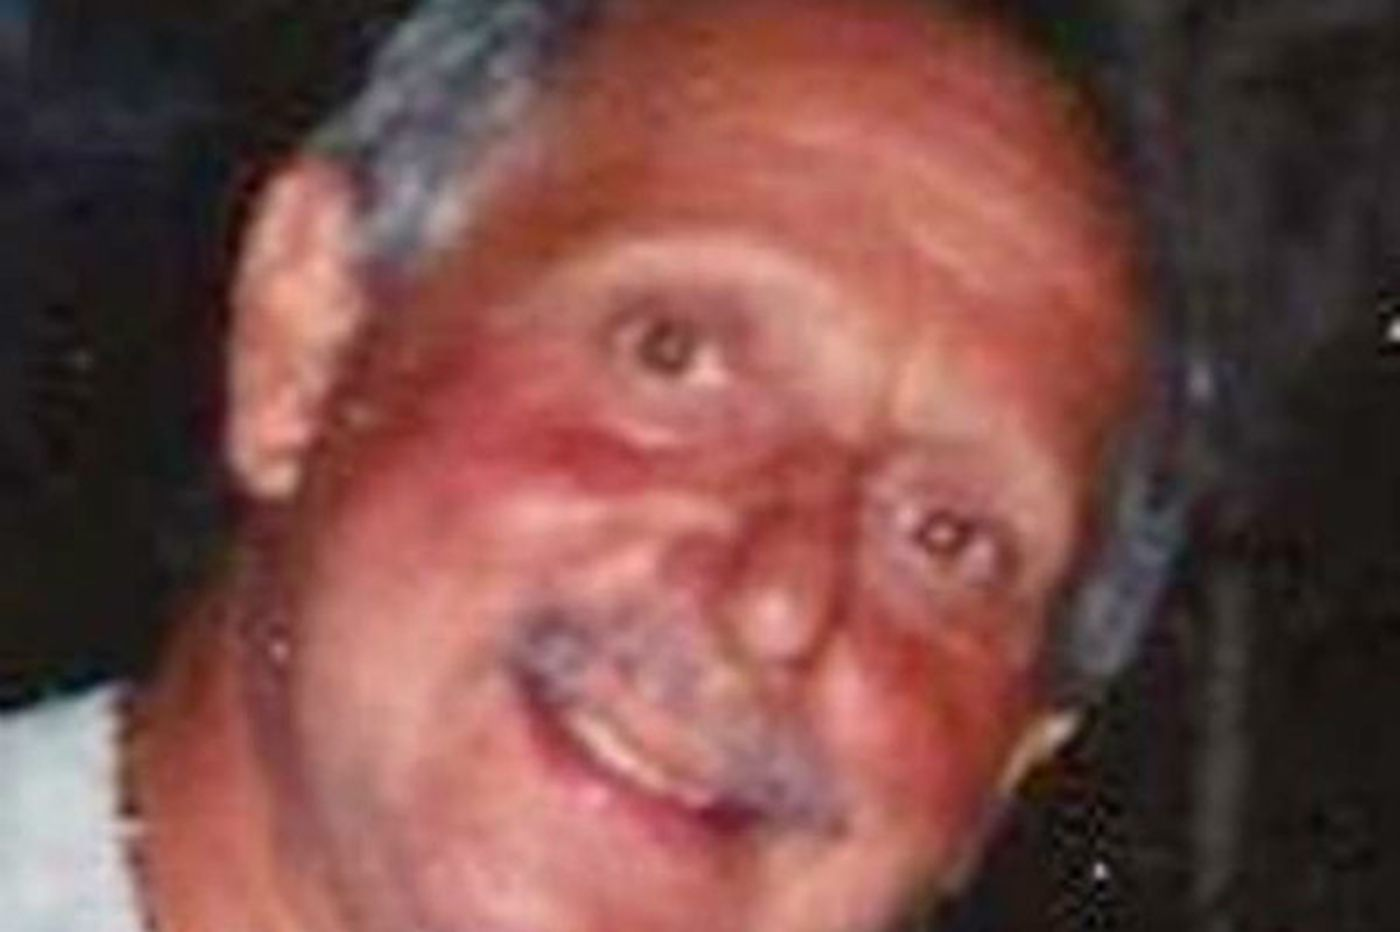 George Schrufer, 72, firefighter who survived 1975 Gulf refinery blaze